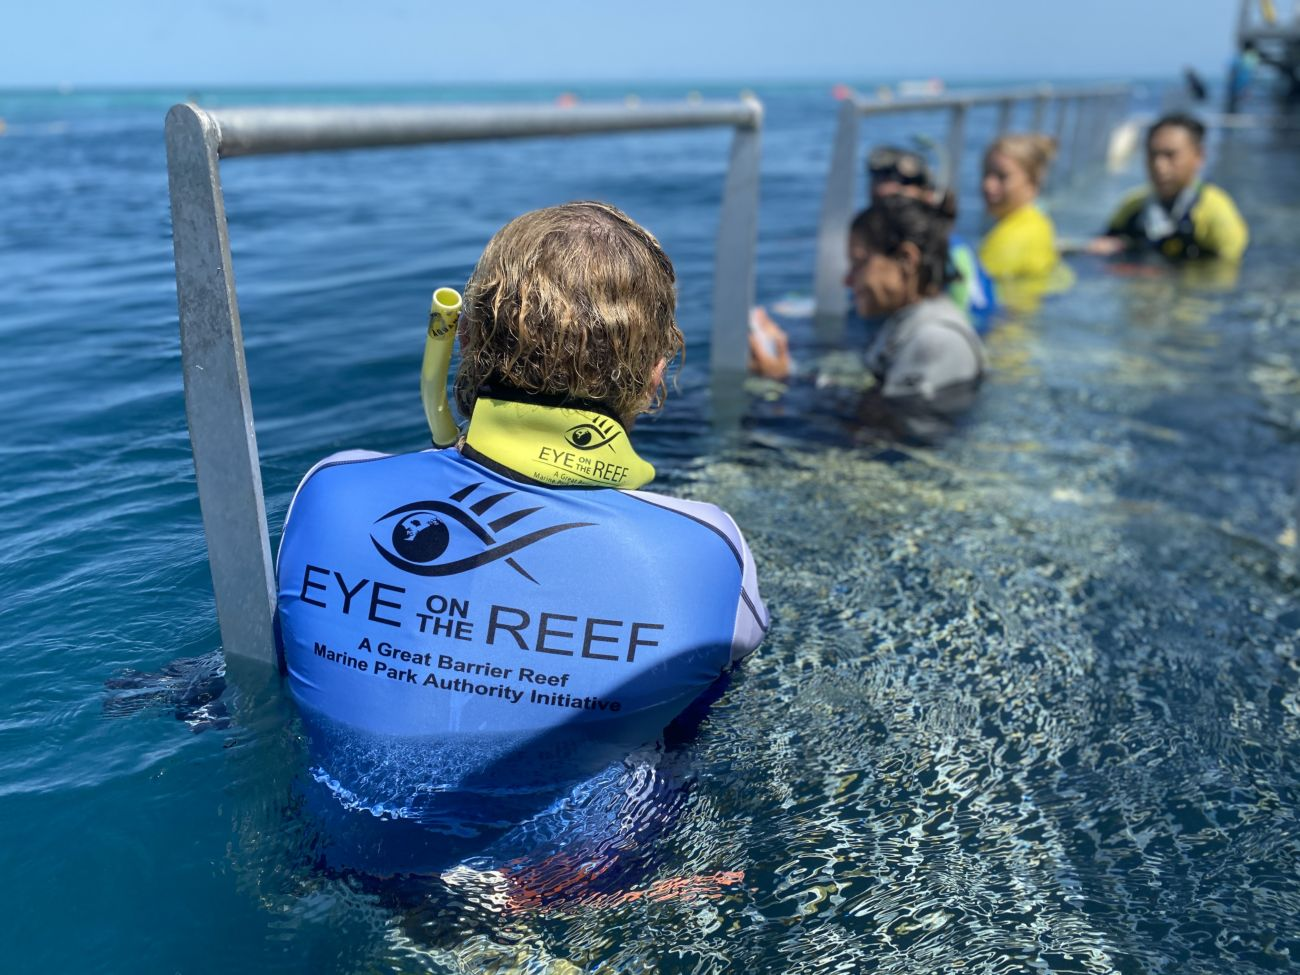 Eye on the Reef - Chris Jones